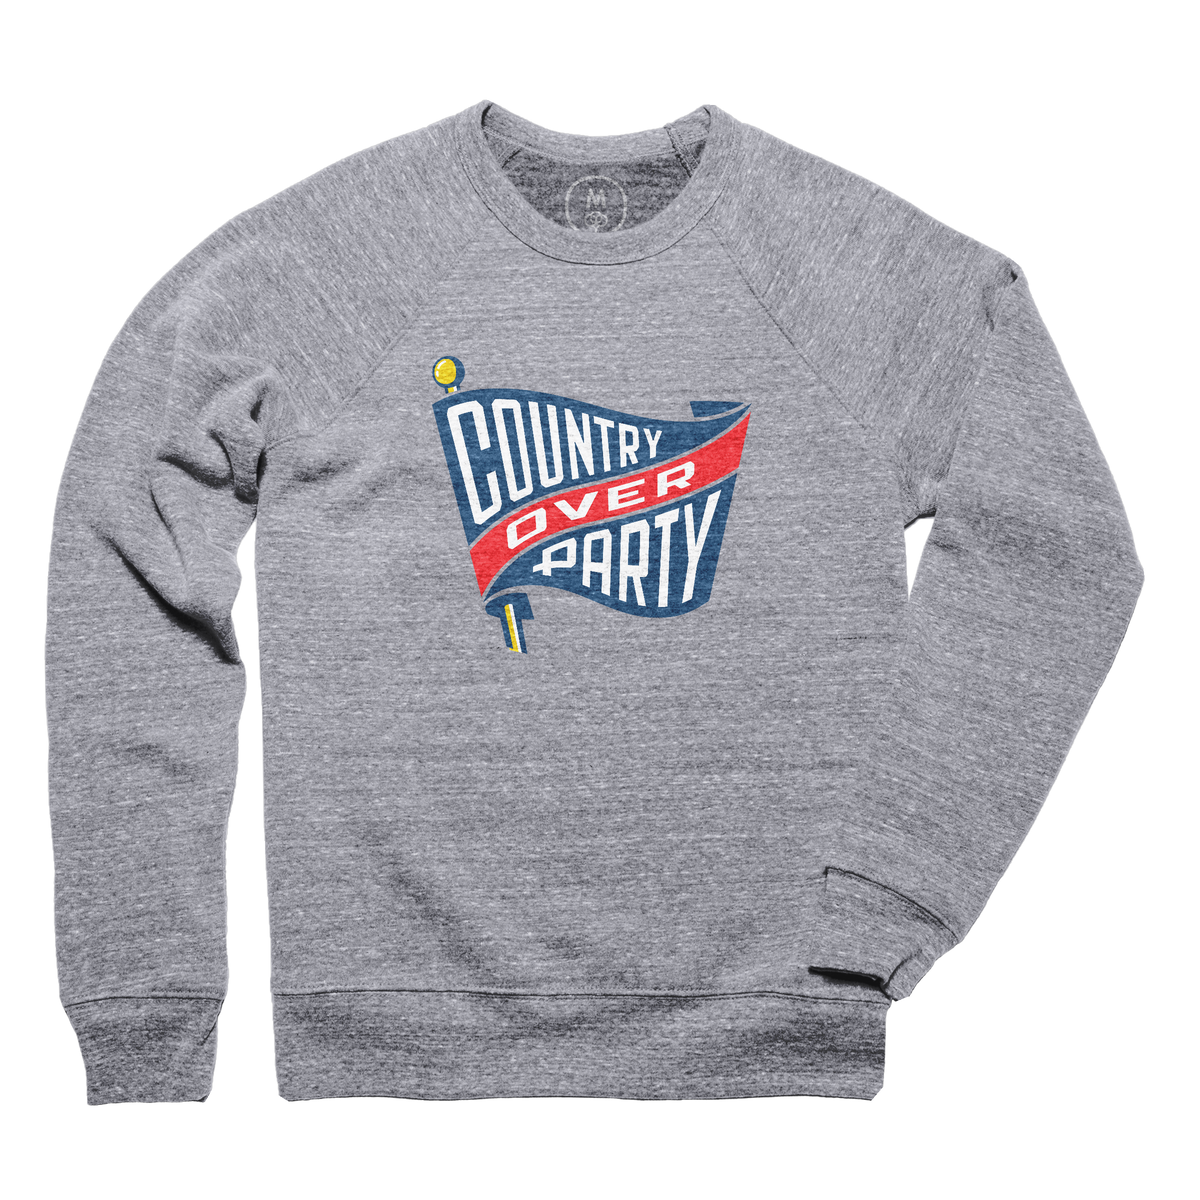 "138772dd82 Country Over Party"" graphic tee and pullover crewneck by Matthew ..."